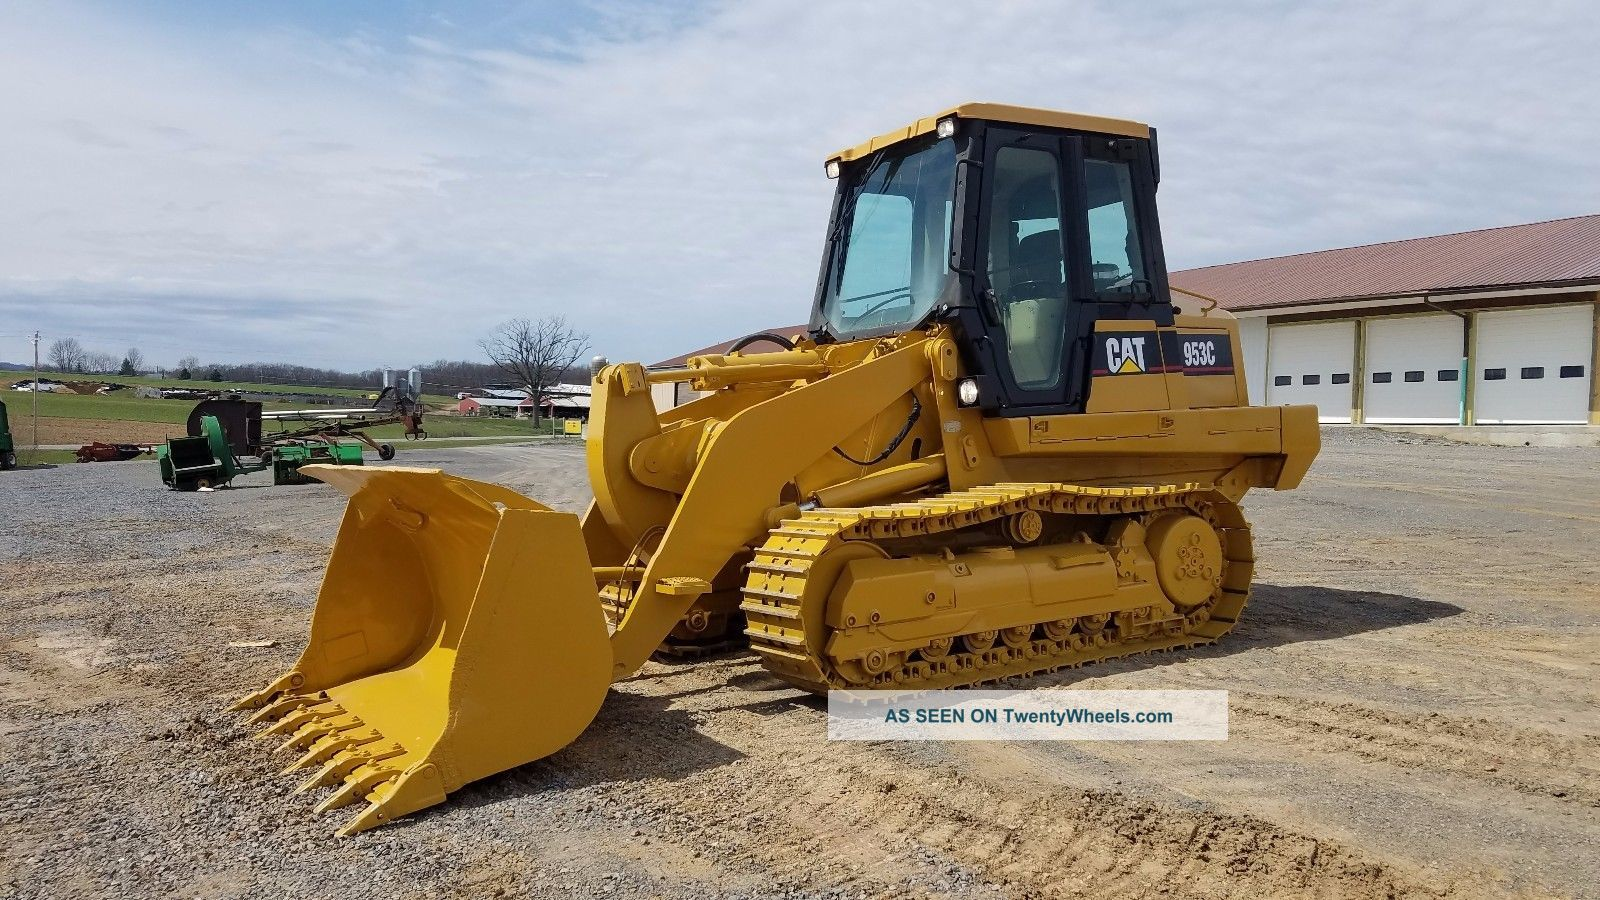 1999 Caterpillar 953c Track Loader Diesel Engine Hydraulic Machinery Cab Ac Heat Crawler Dozers & Loaders photo